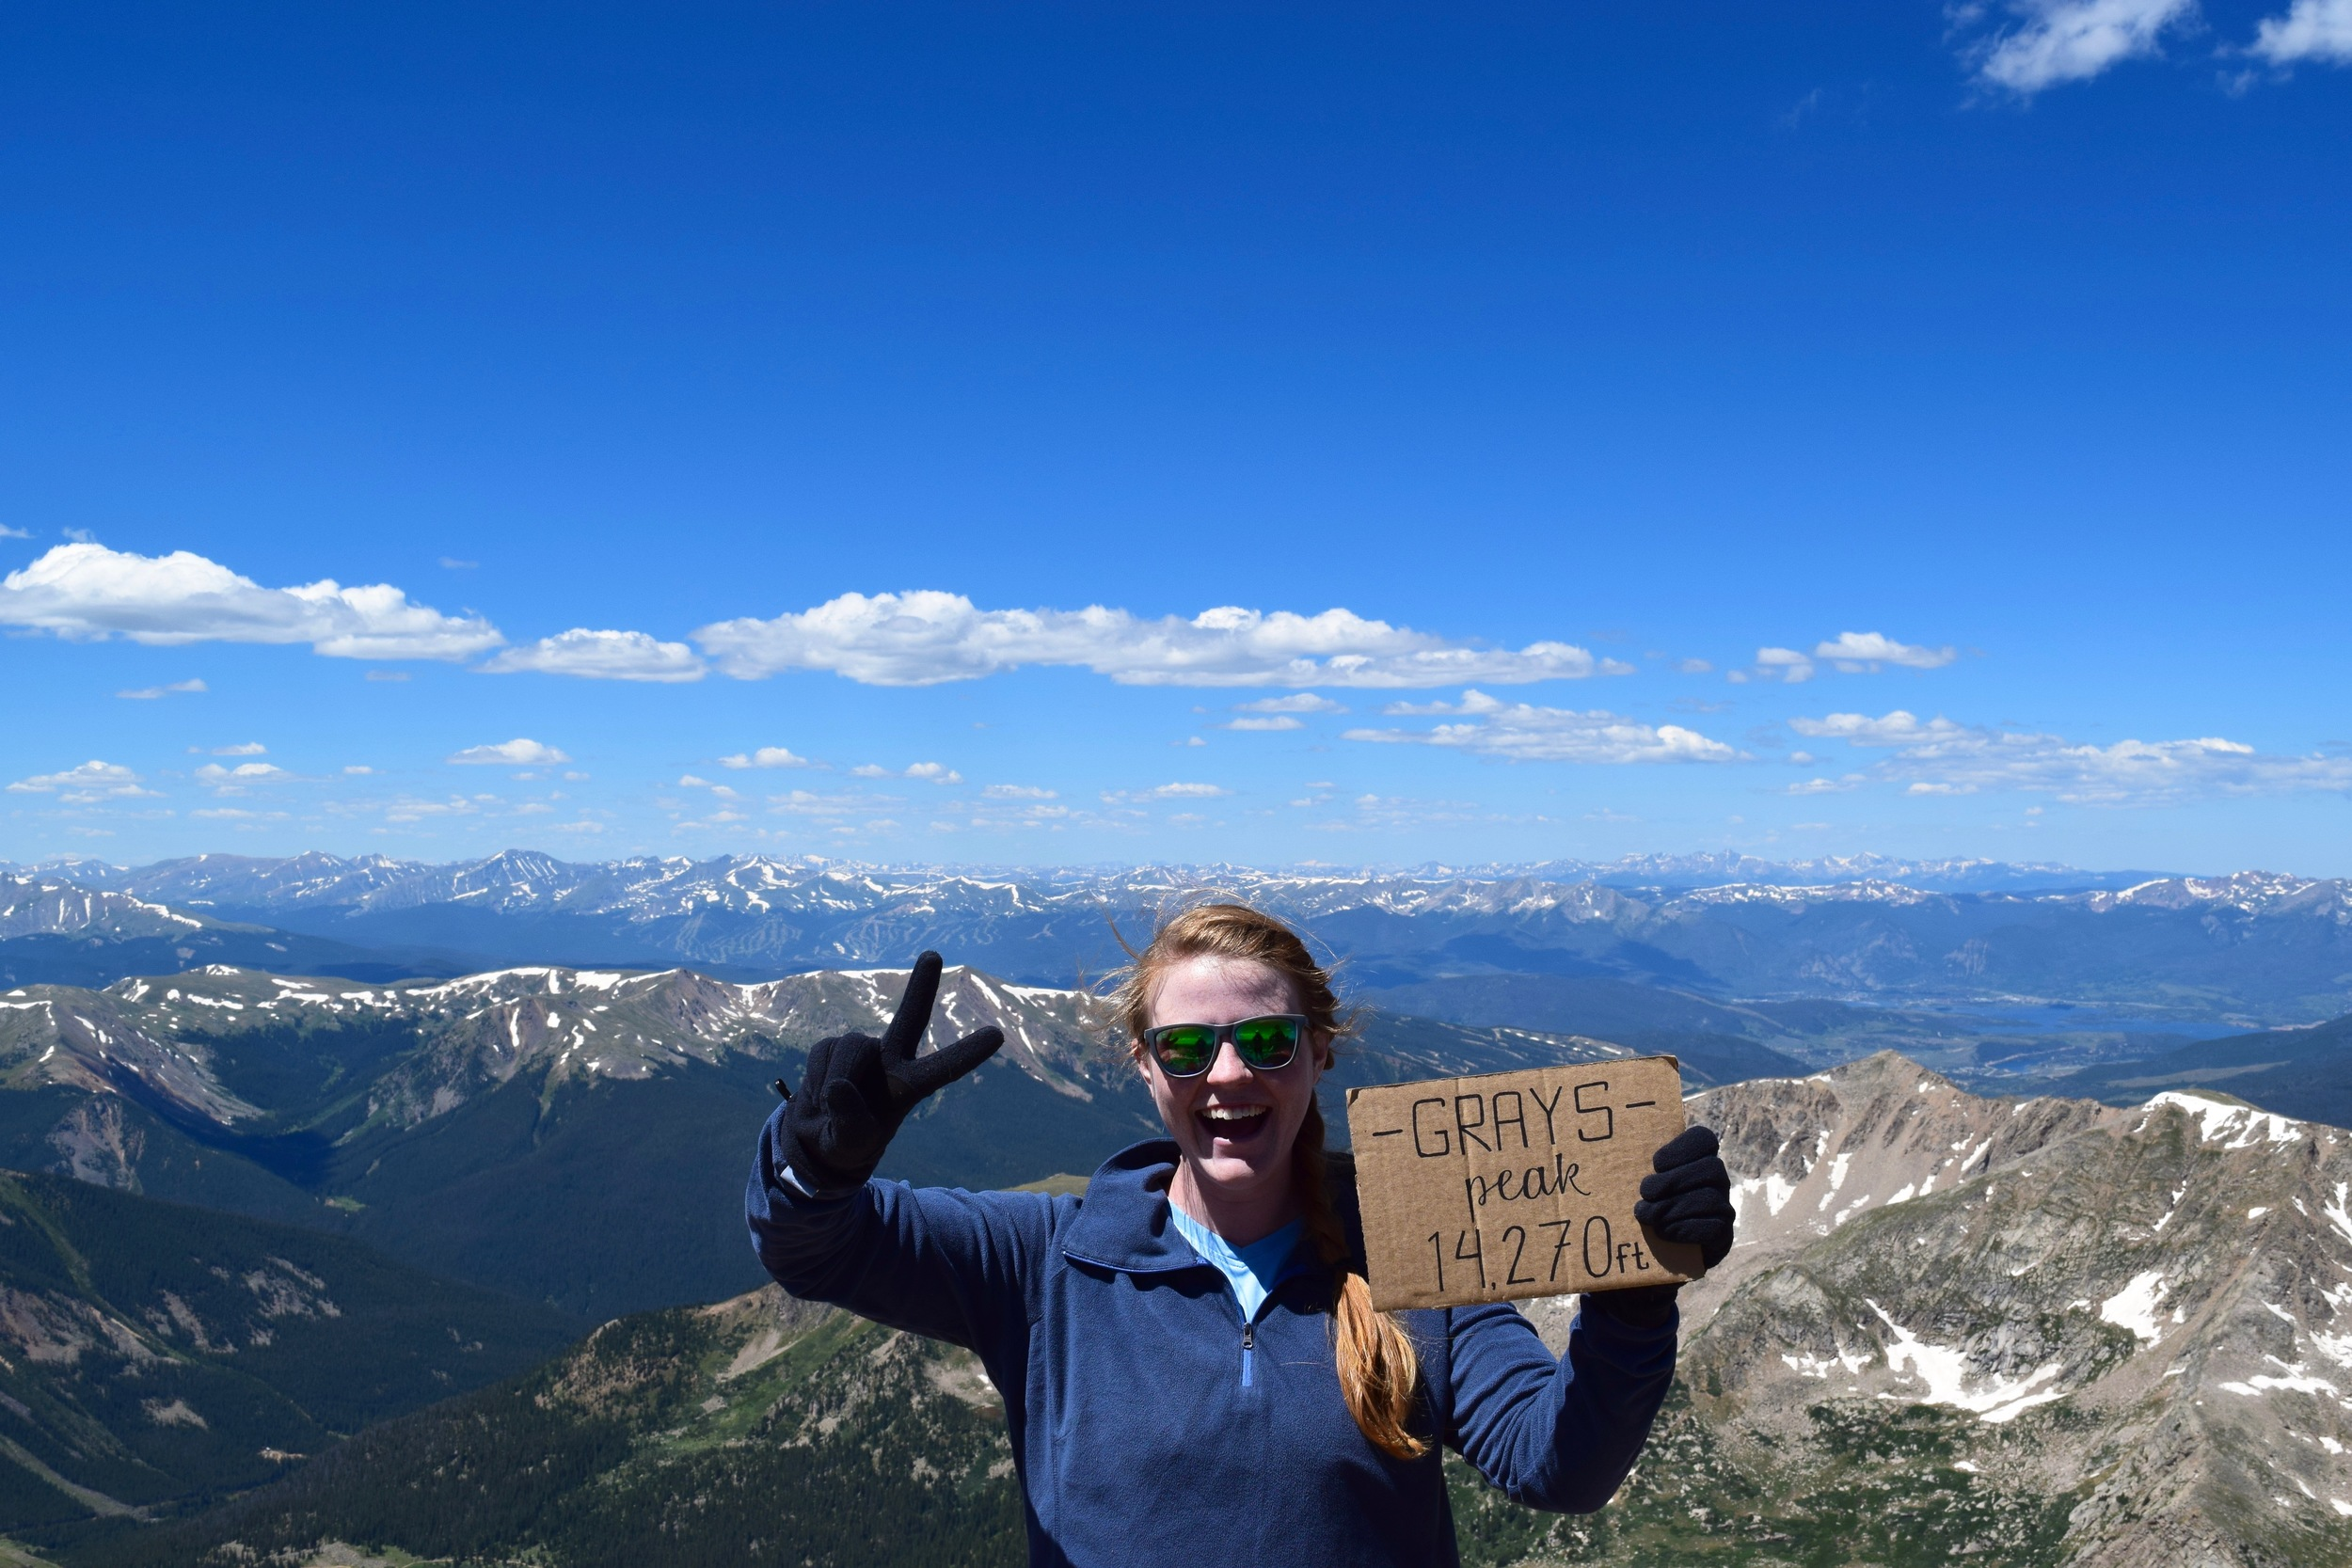 Second fourteener!